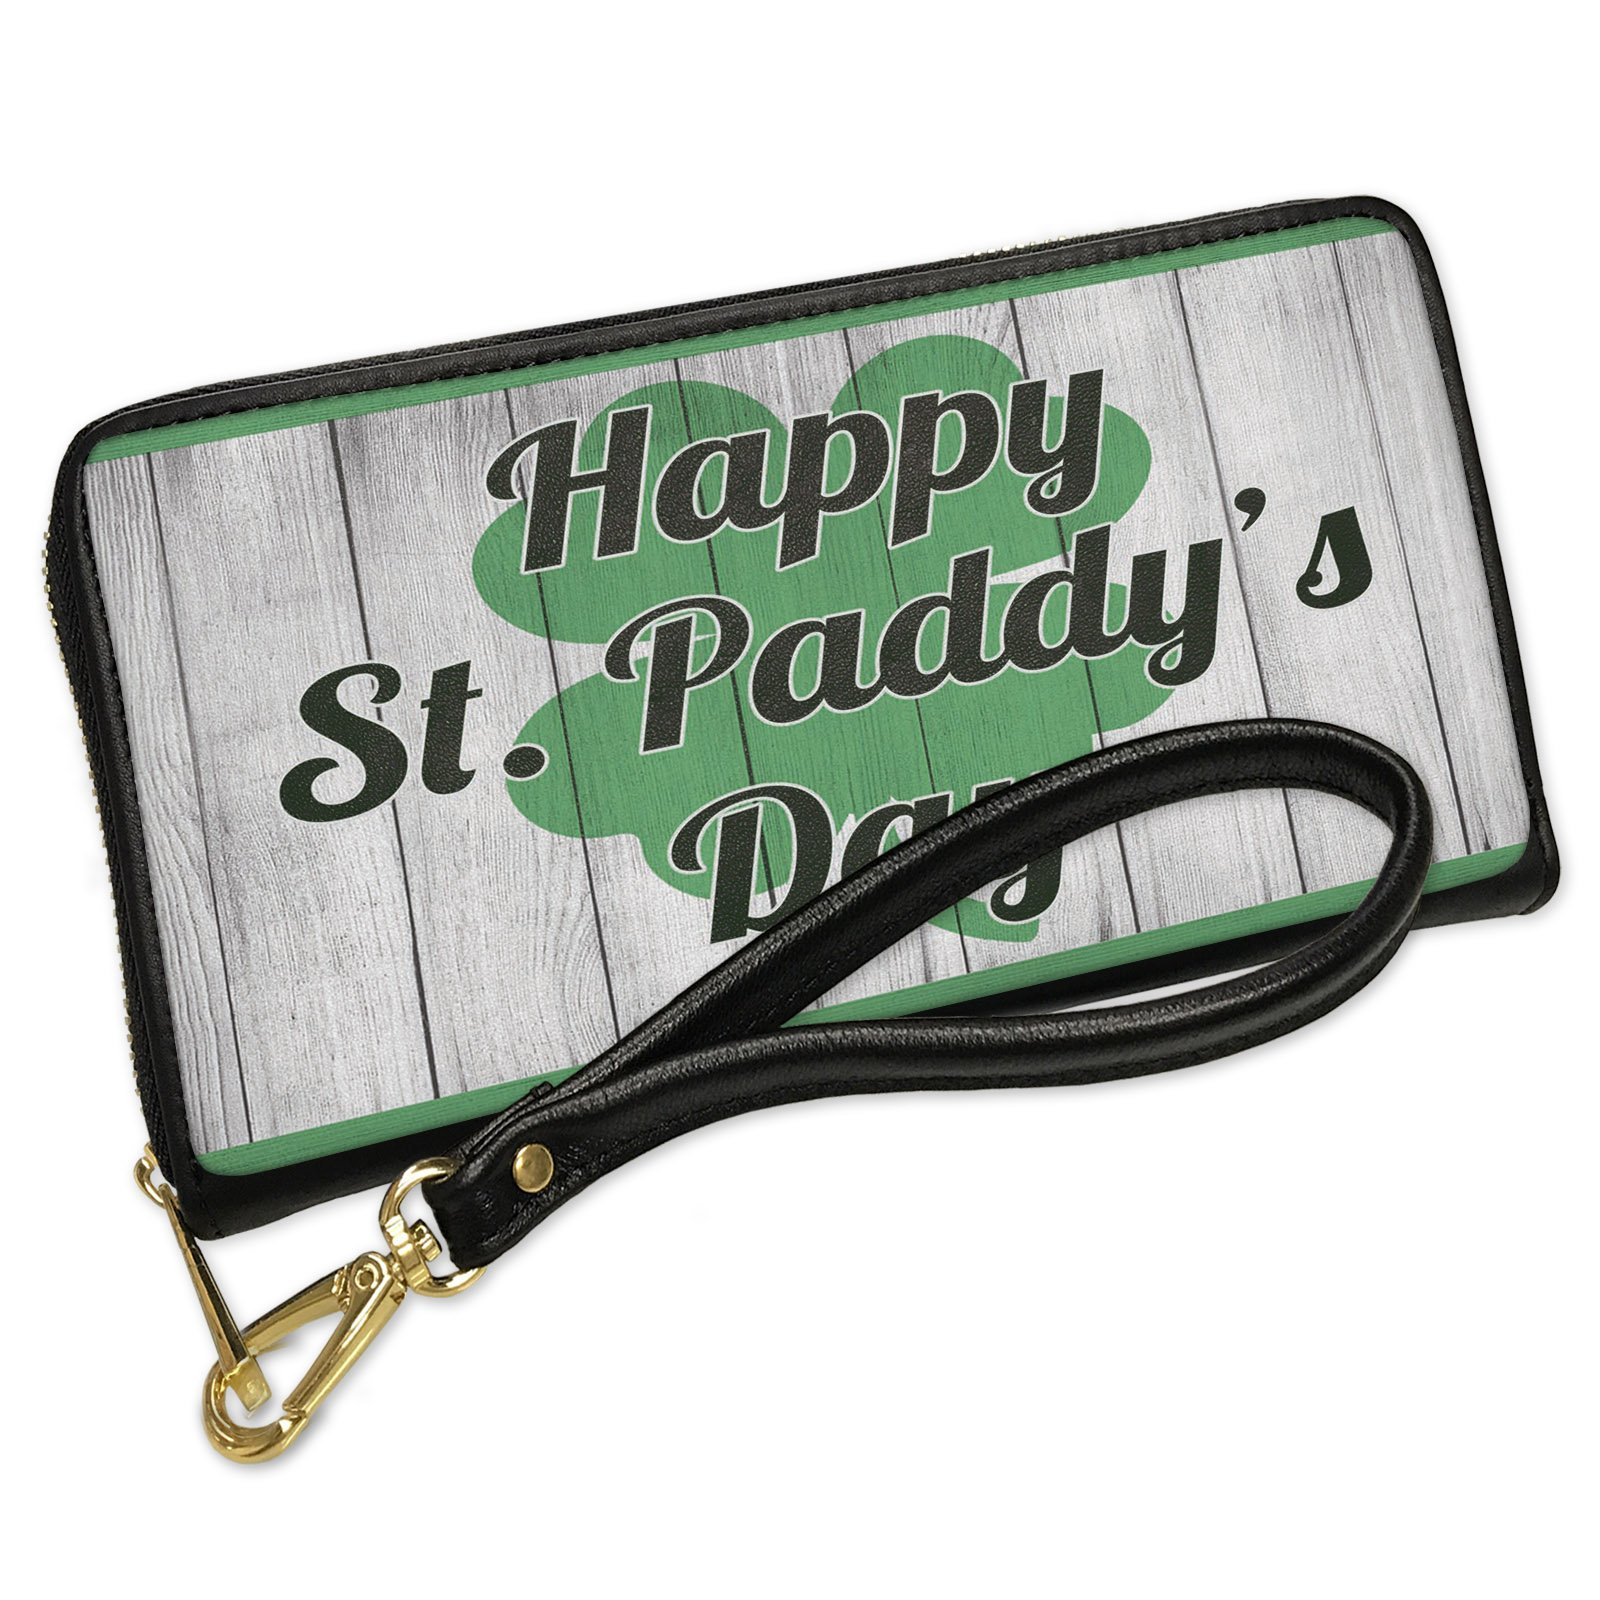 Wallet Clutch Happy St. Paddy's Day St. Patrick's Day Shamrock on Wood with Removable Wristlet Strap Neonblond